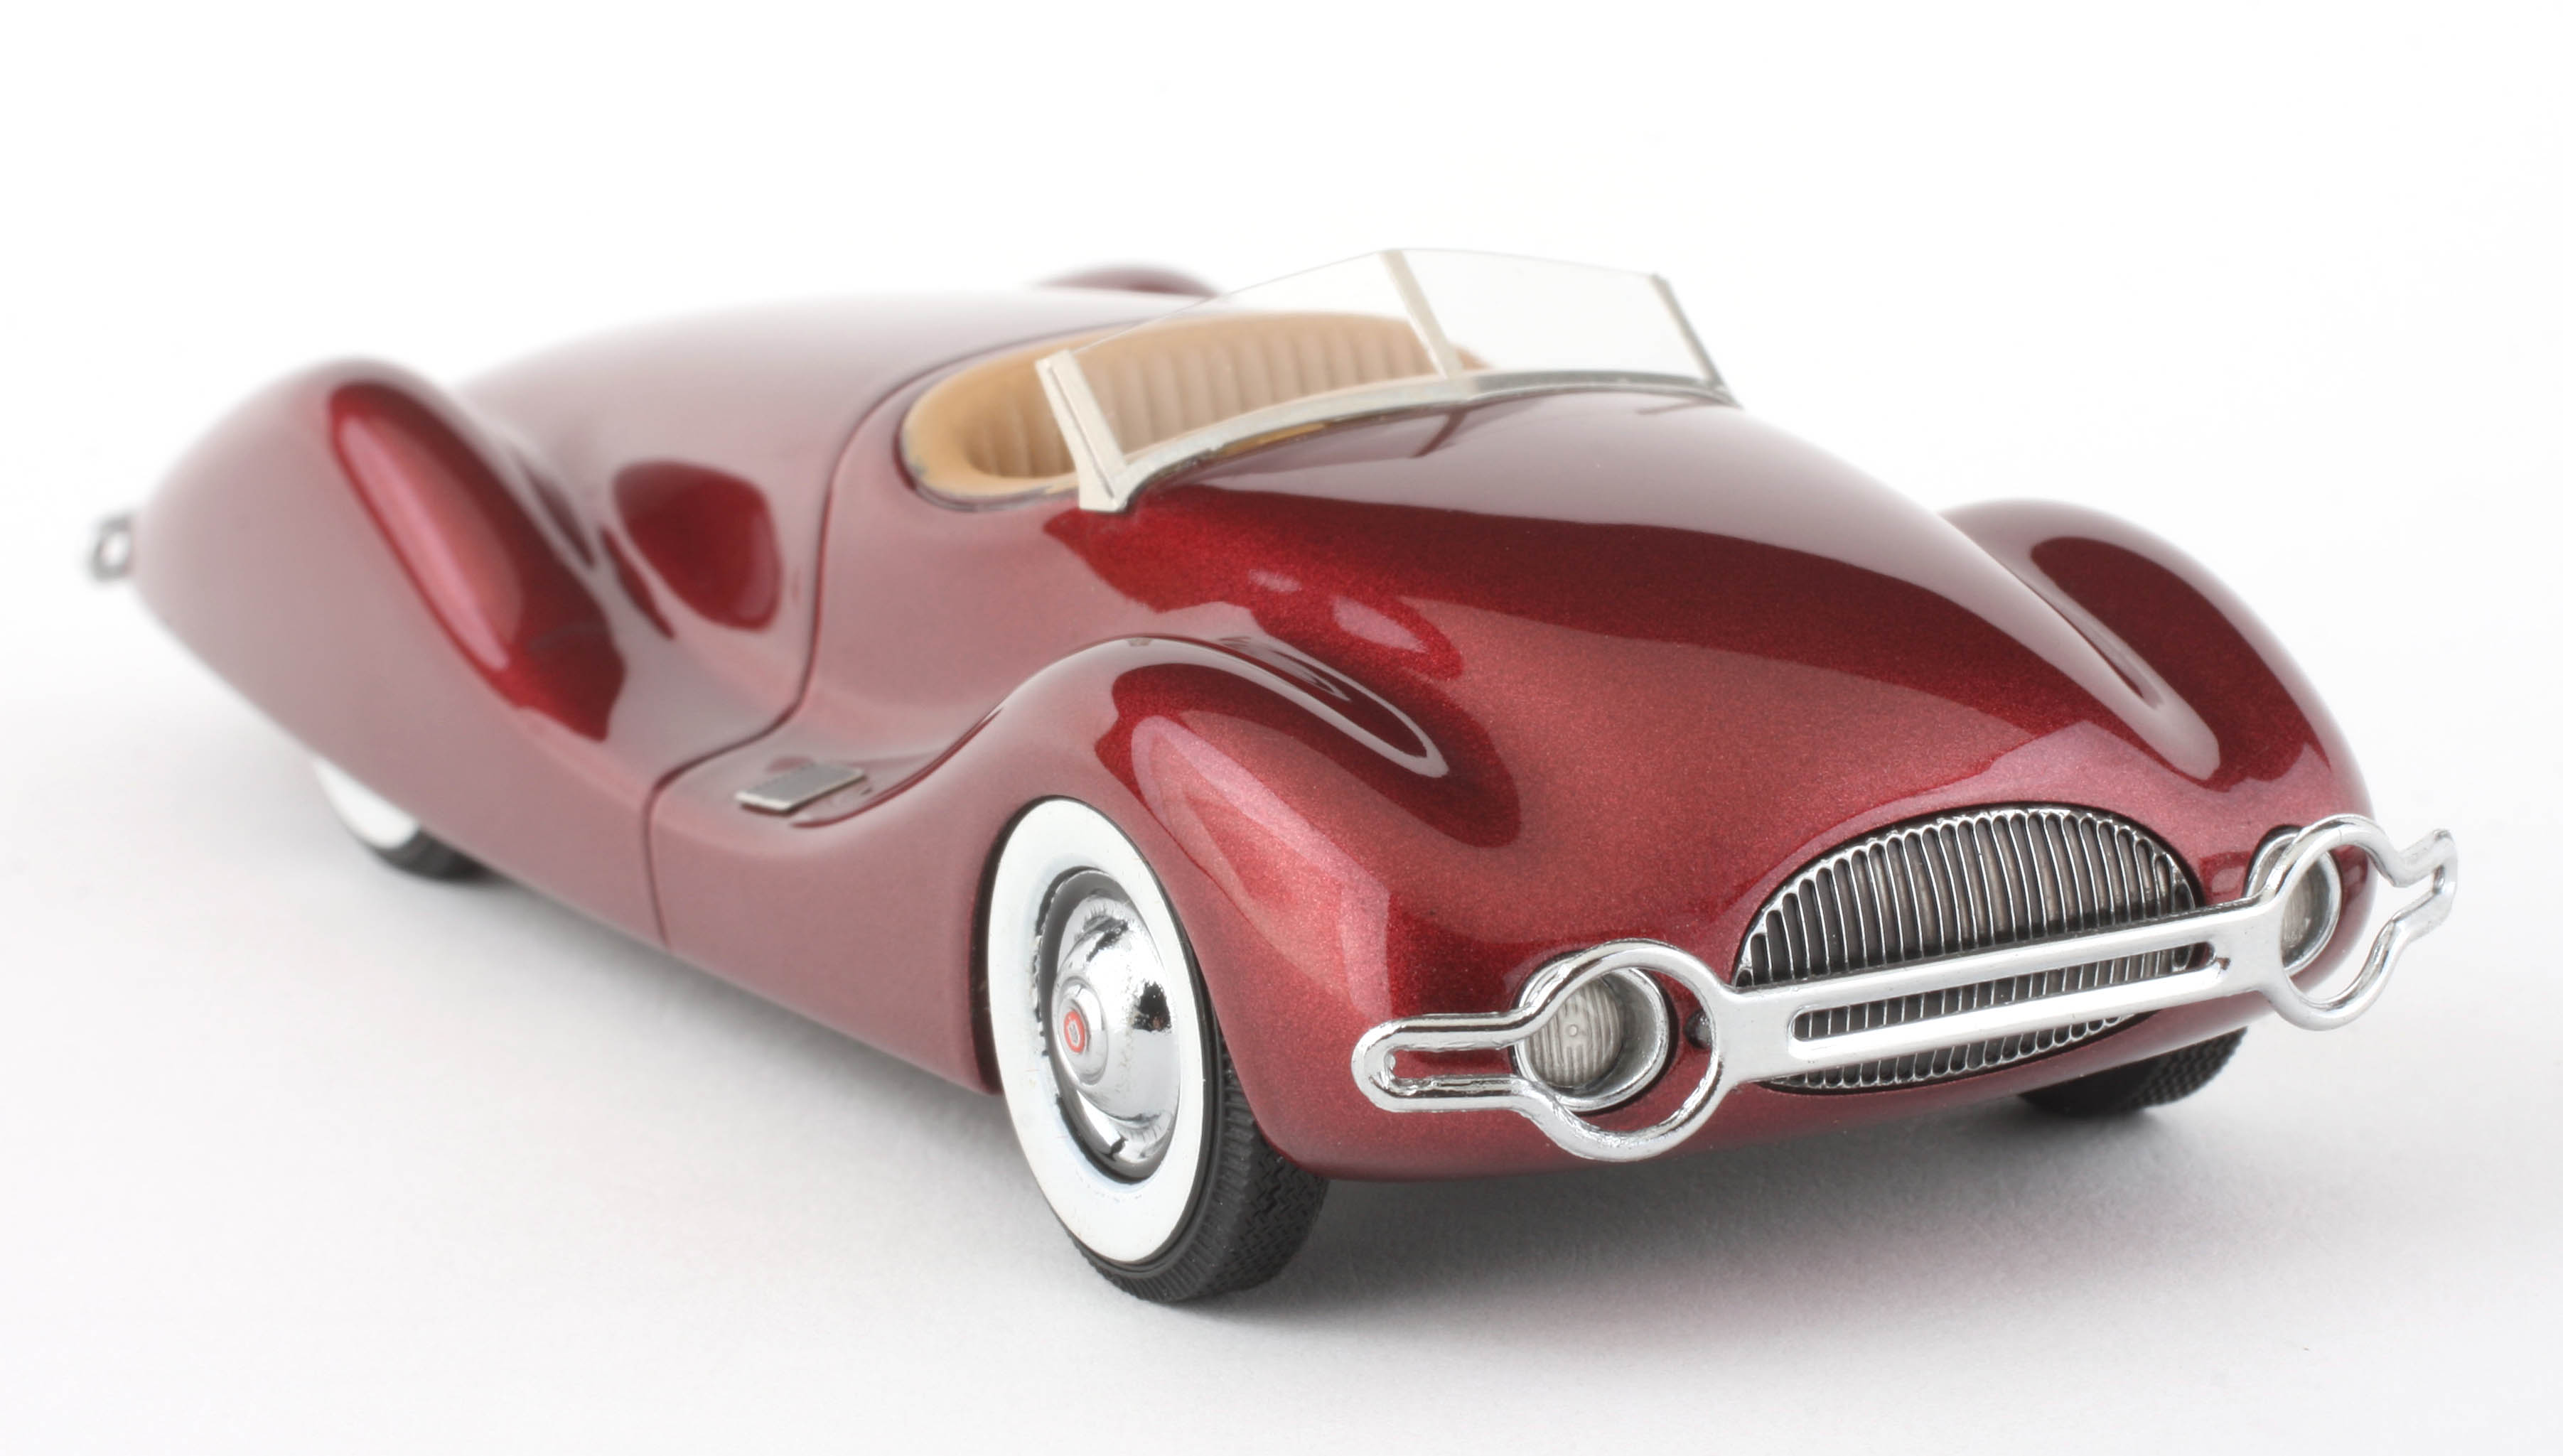 1:43 Automodello – 1948 Norman. E Timbs Buick Streamliner – Maroon Metallic Resin Model Car  Item #AM43-TIM-STR